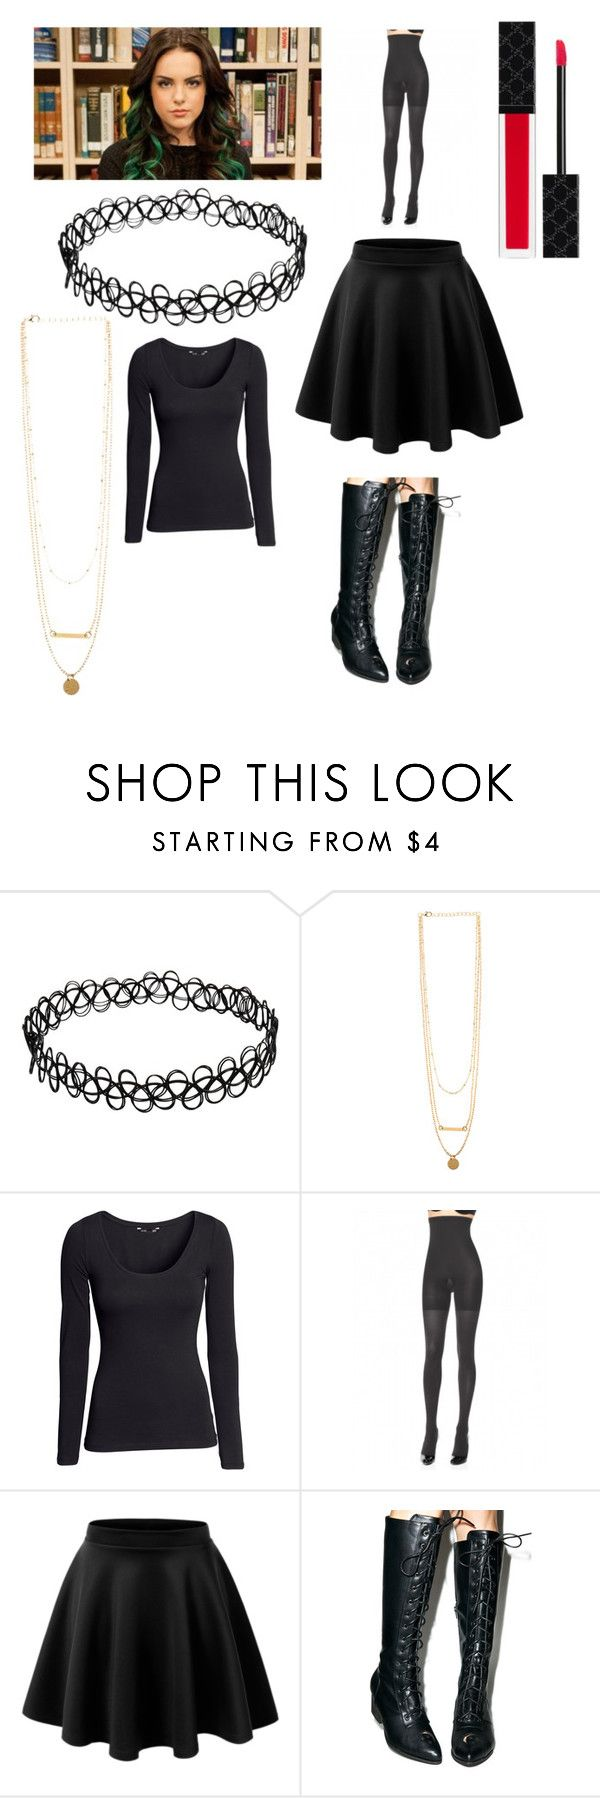 """DIY Jade from Victorious!"" by sisibff ❤ liked on Polyvore featuring H&M, SPANX, Y.R.U. and Gucci"